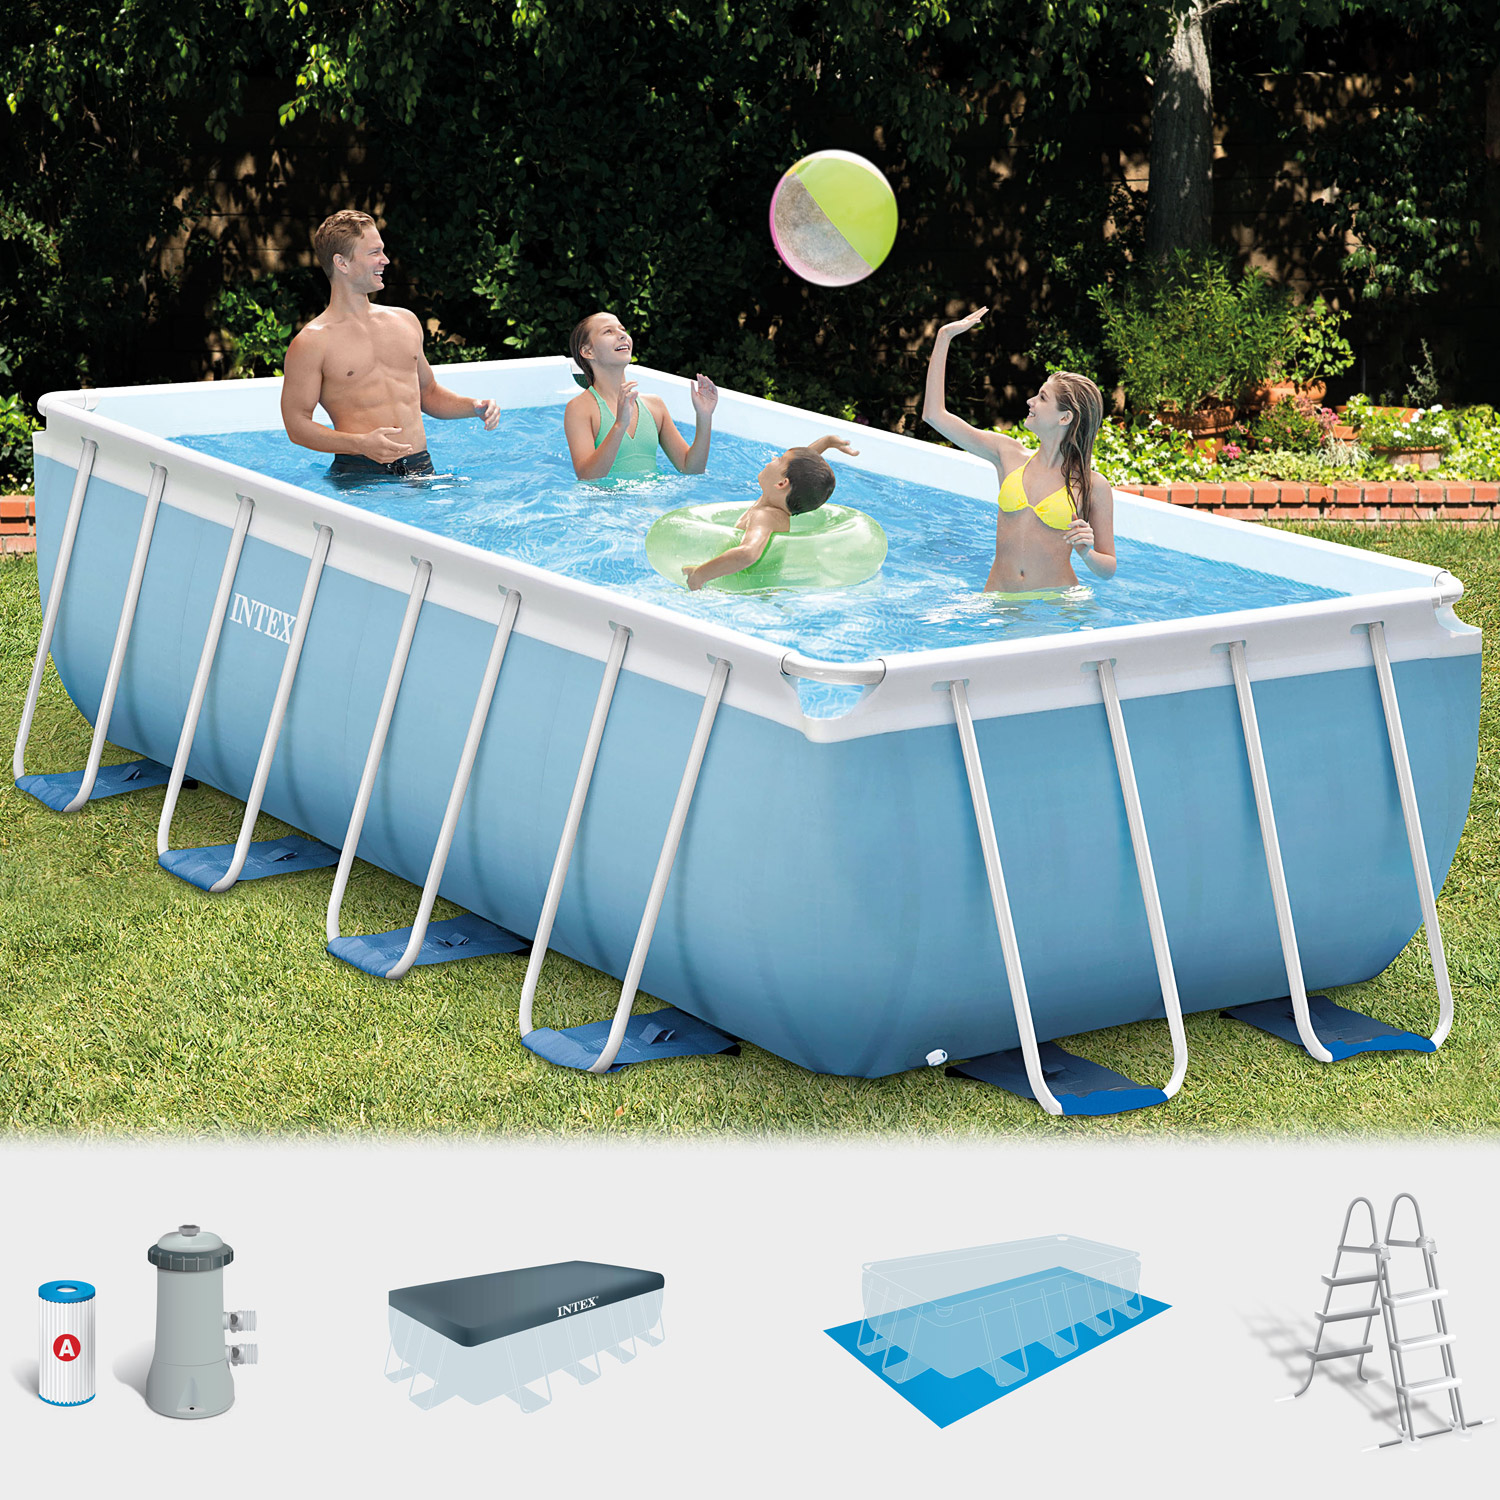 Pool Filteranlage Luft Intex Frame Pool Set Prism 488x244x107 Cm Pumpe Schwimmbad